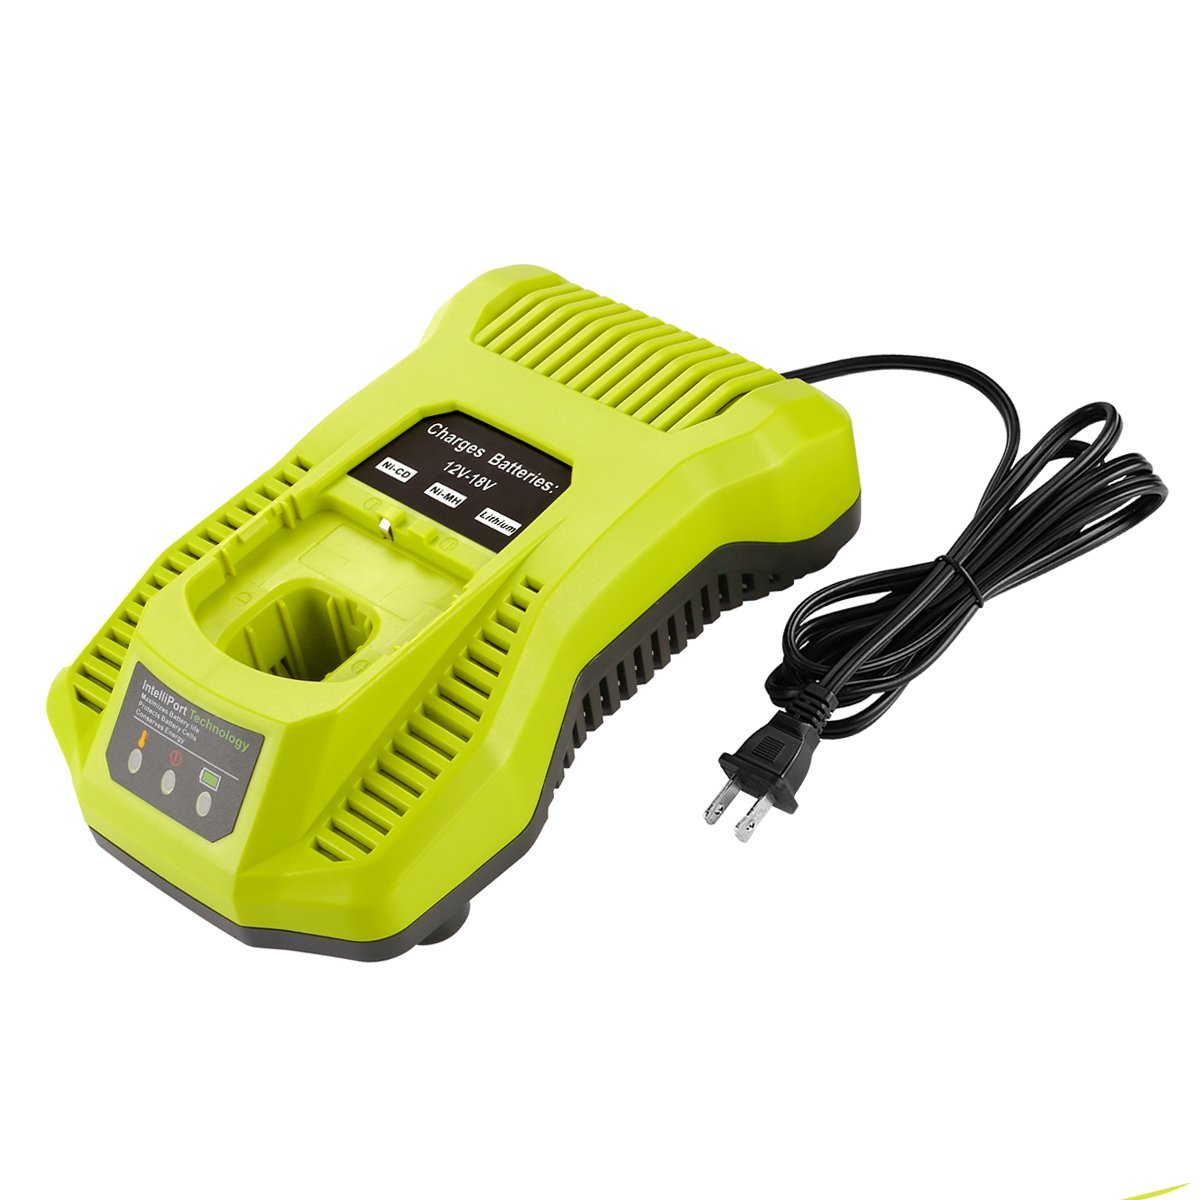 YABELLE P117 Dual Chemistry IntelliPort Charger for All Ryobi 12V-18V ONE+ Lithium Battery & NiCad NIMH Battery US Plug (Battery Not Included, Charger Only)